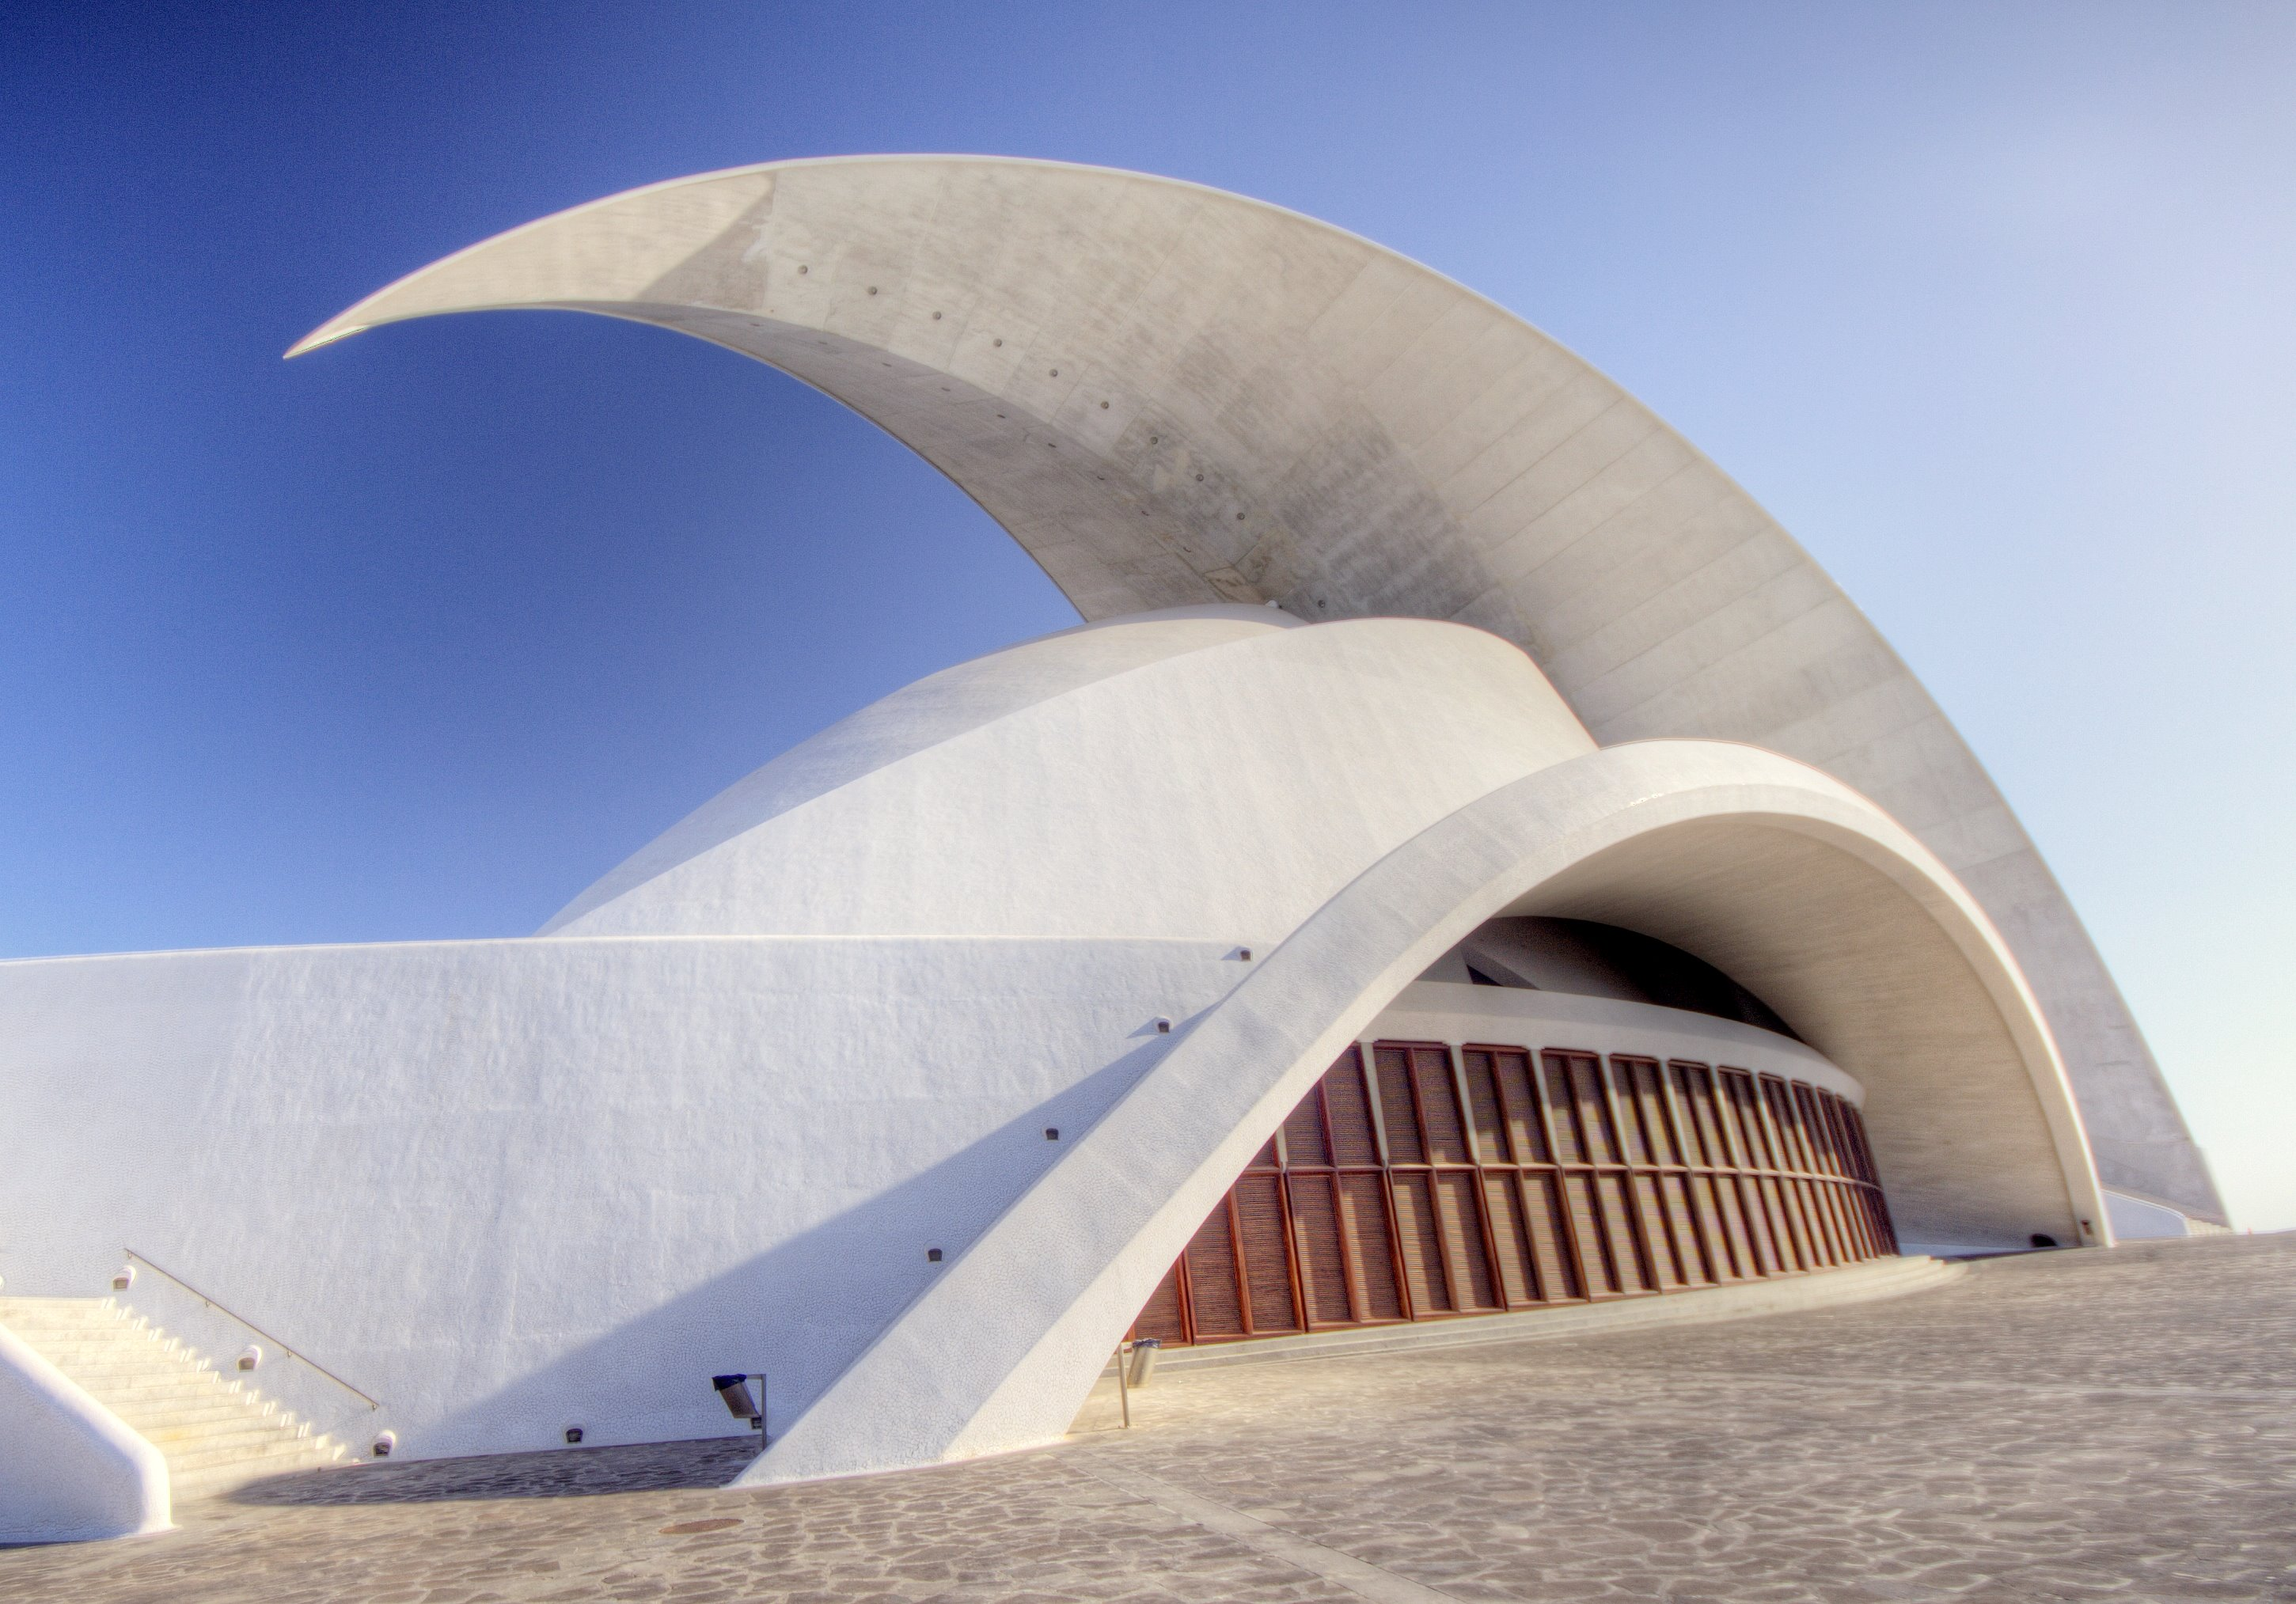 The Concert Hall Tenerife